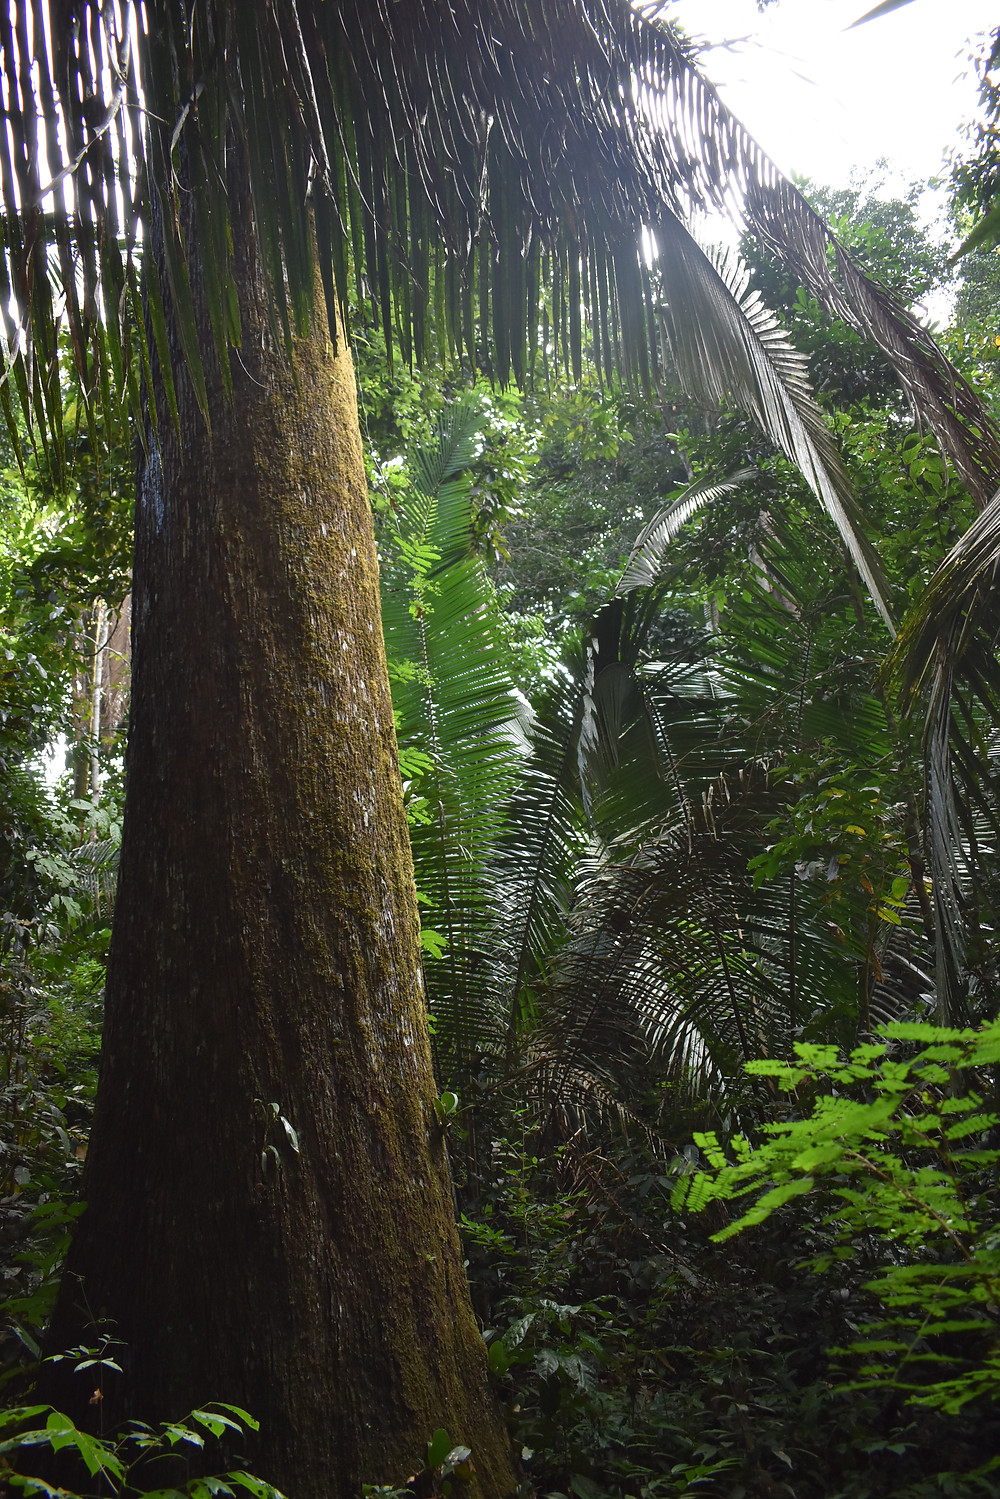 A tropical forest scene, with a tall thick tree trunk surrounded by lush diverse foliage